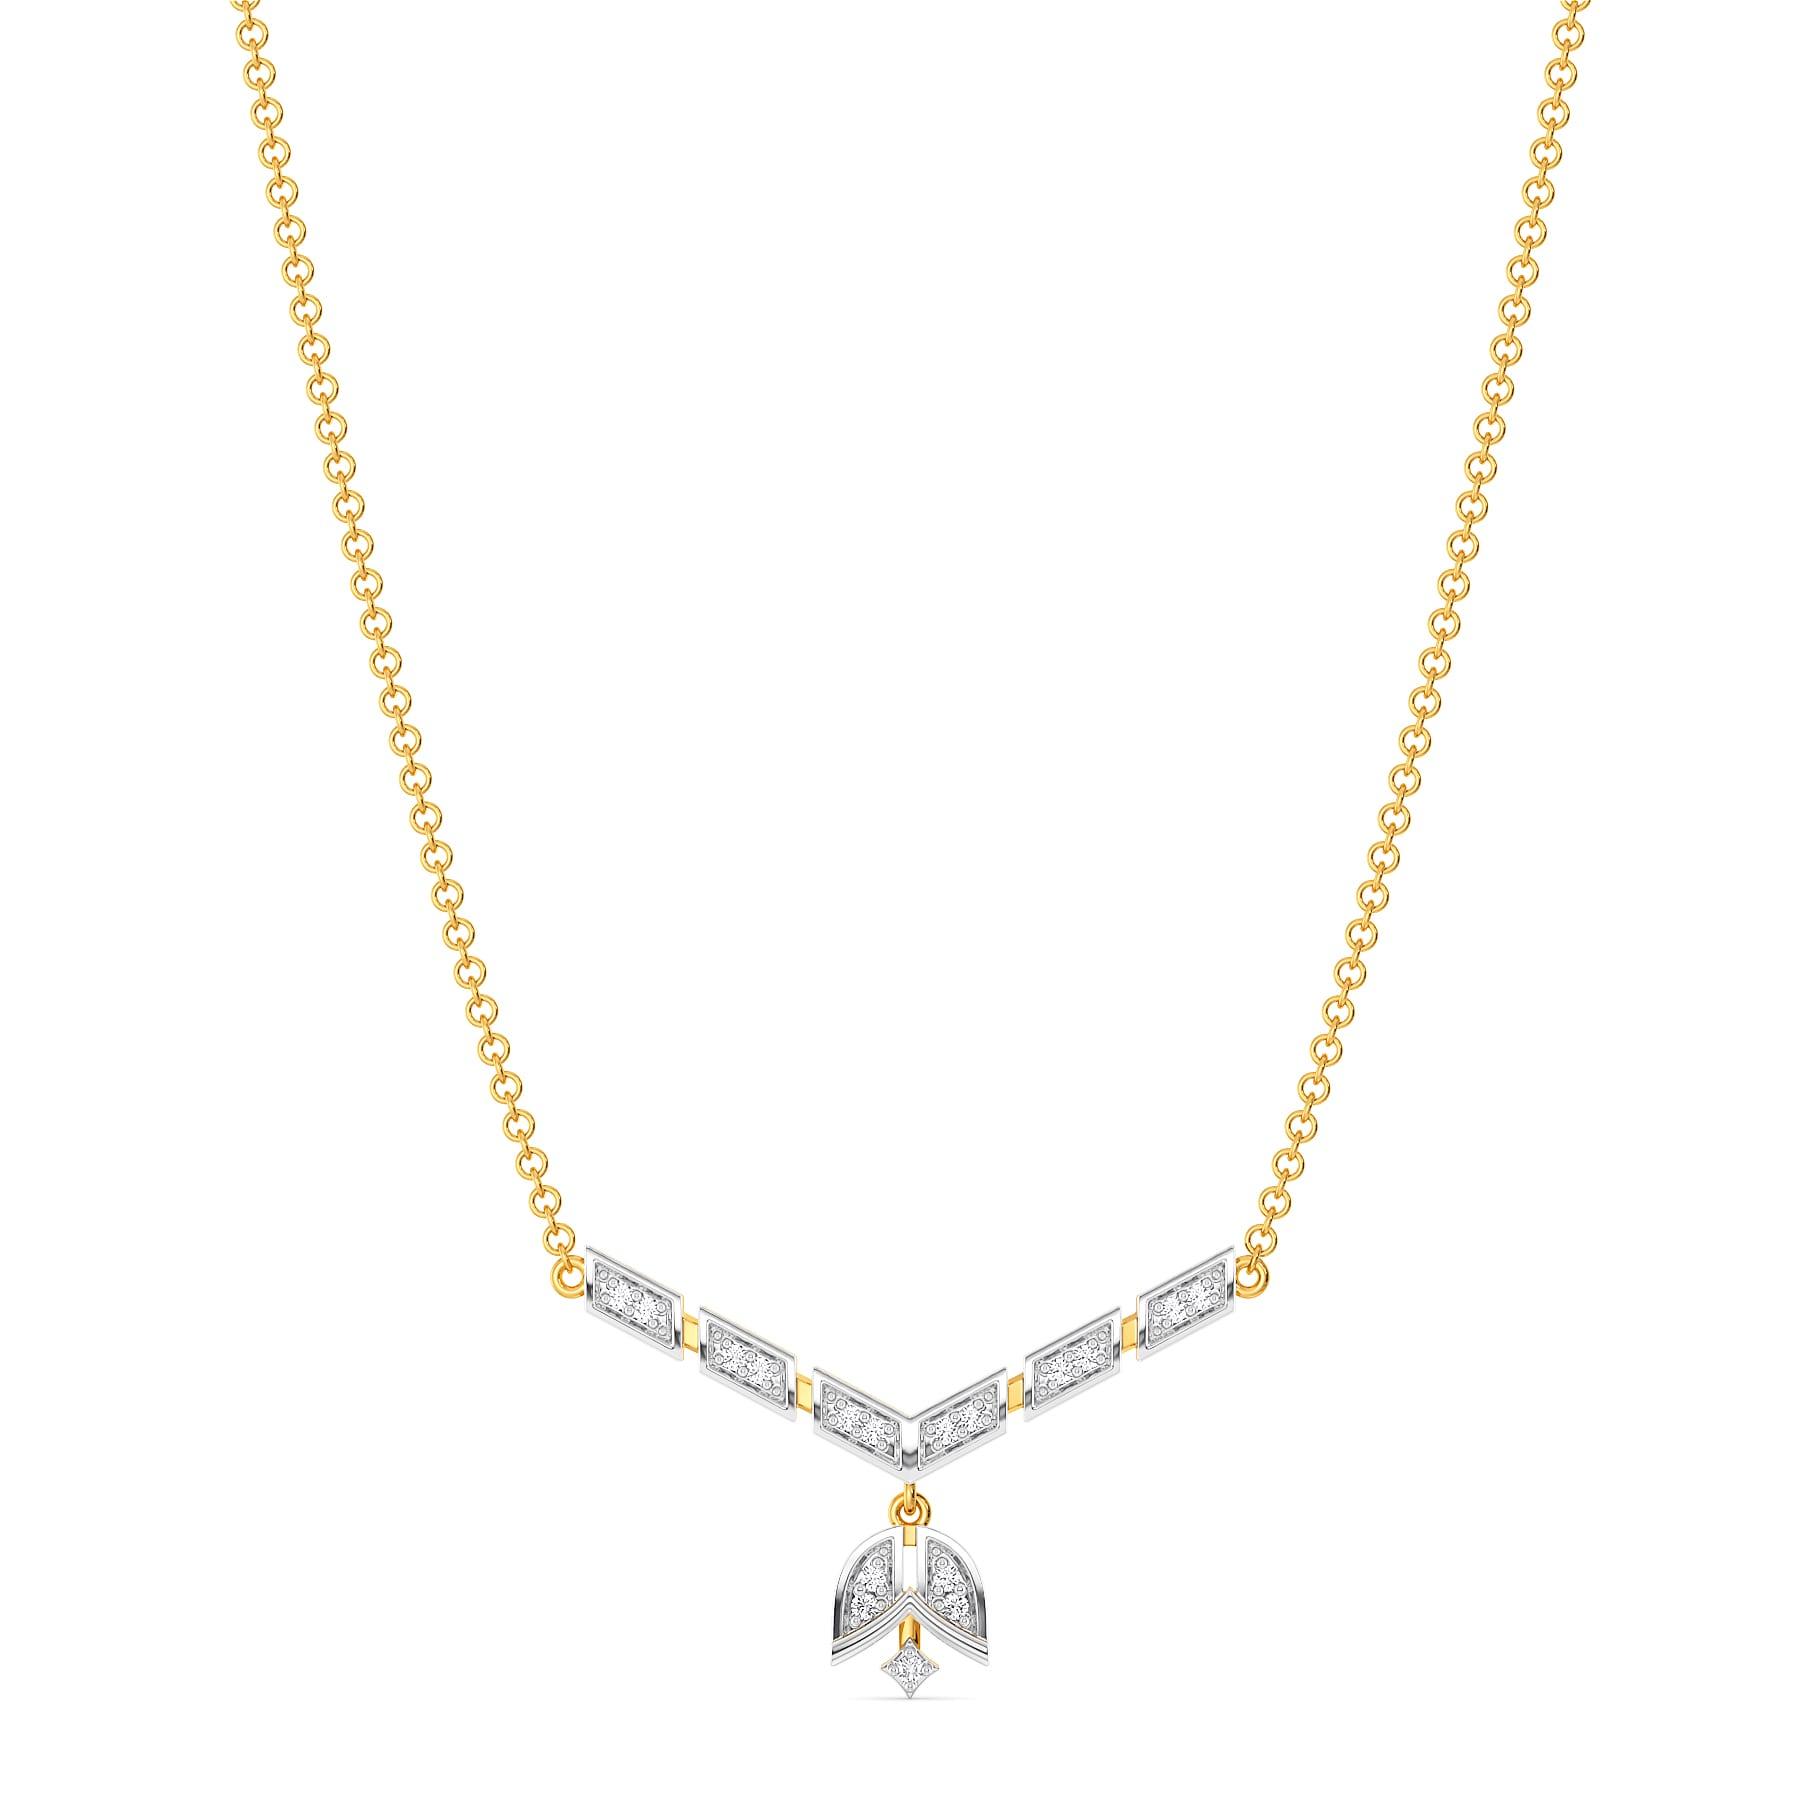 Art Poise Diamond Necklaces